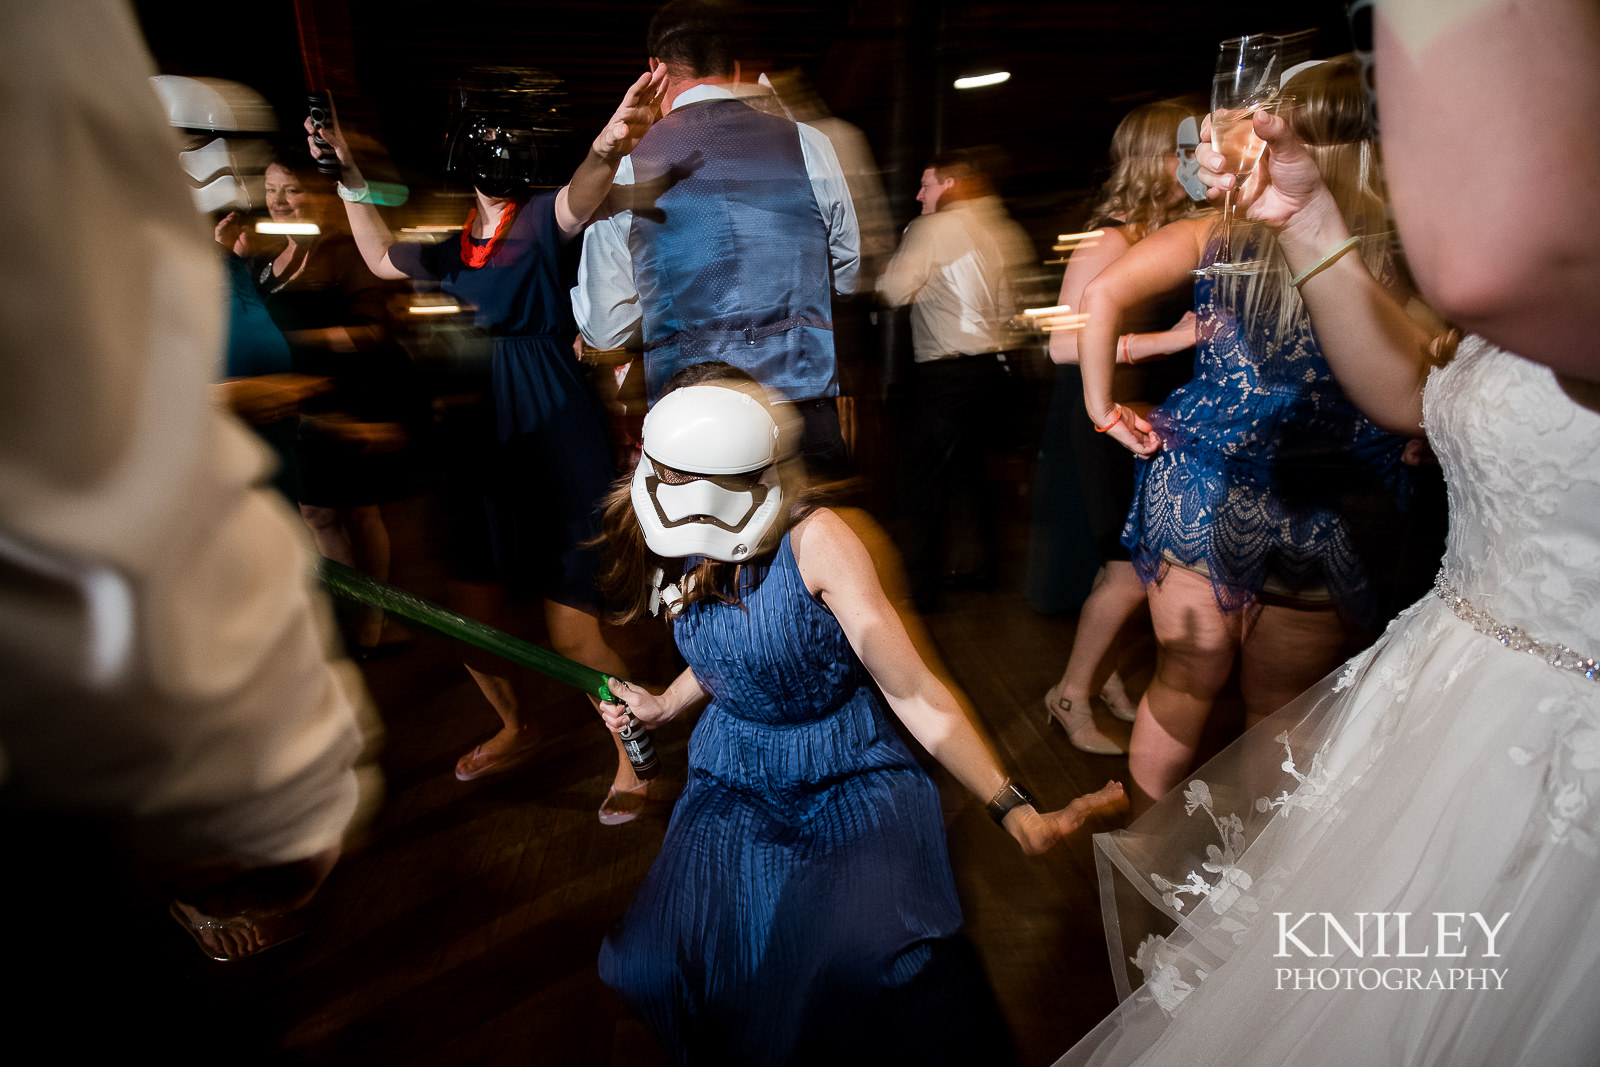 61-Pearl-St-Grill-Wedding-Reception-Buffalo-NY-Kniley-Photography-Star-Wars-May-the-4th.jpg